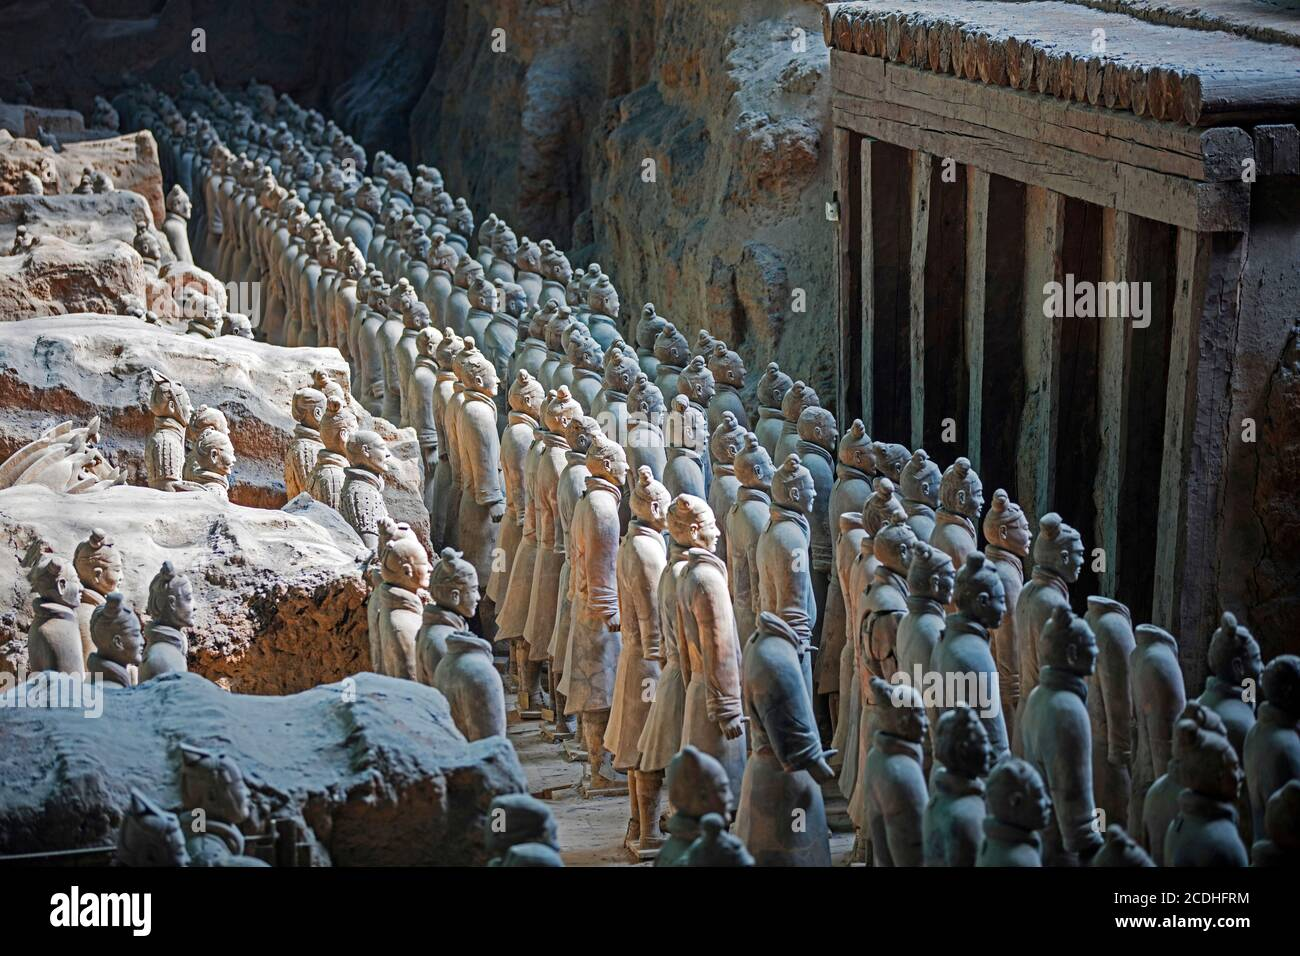 Terracotta Army, sculptures of soldiers depicting the armies of Qin Shi Huang, first Emperor of China near Xi'an / Sian, Lintong District, Shaanxi Stock Photo